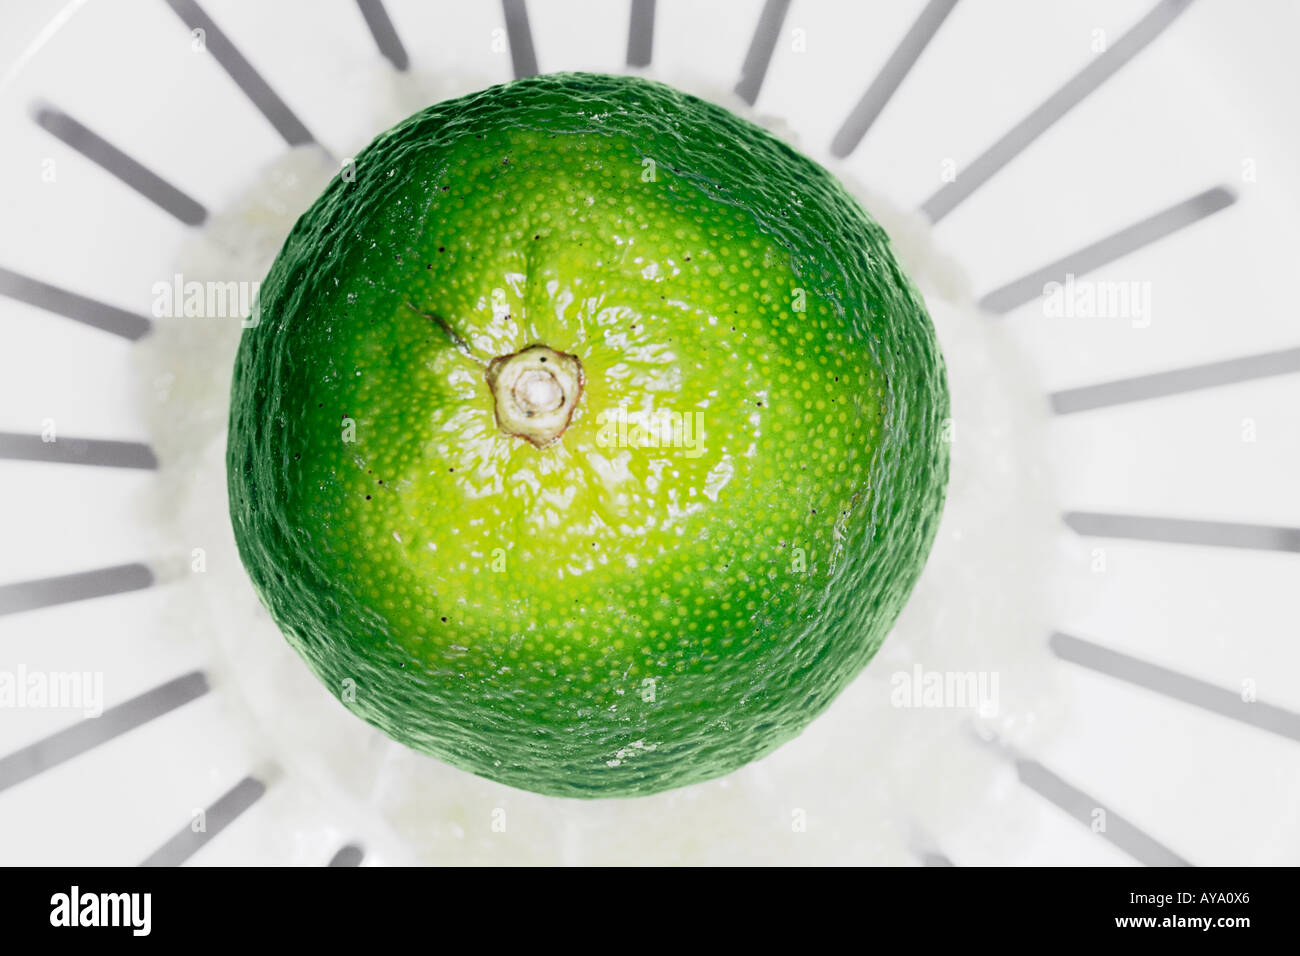 Lime Pressed On Juicer - Stock Image